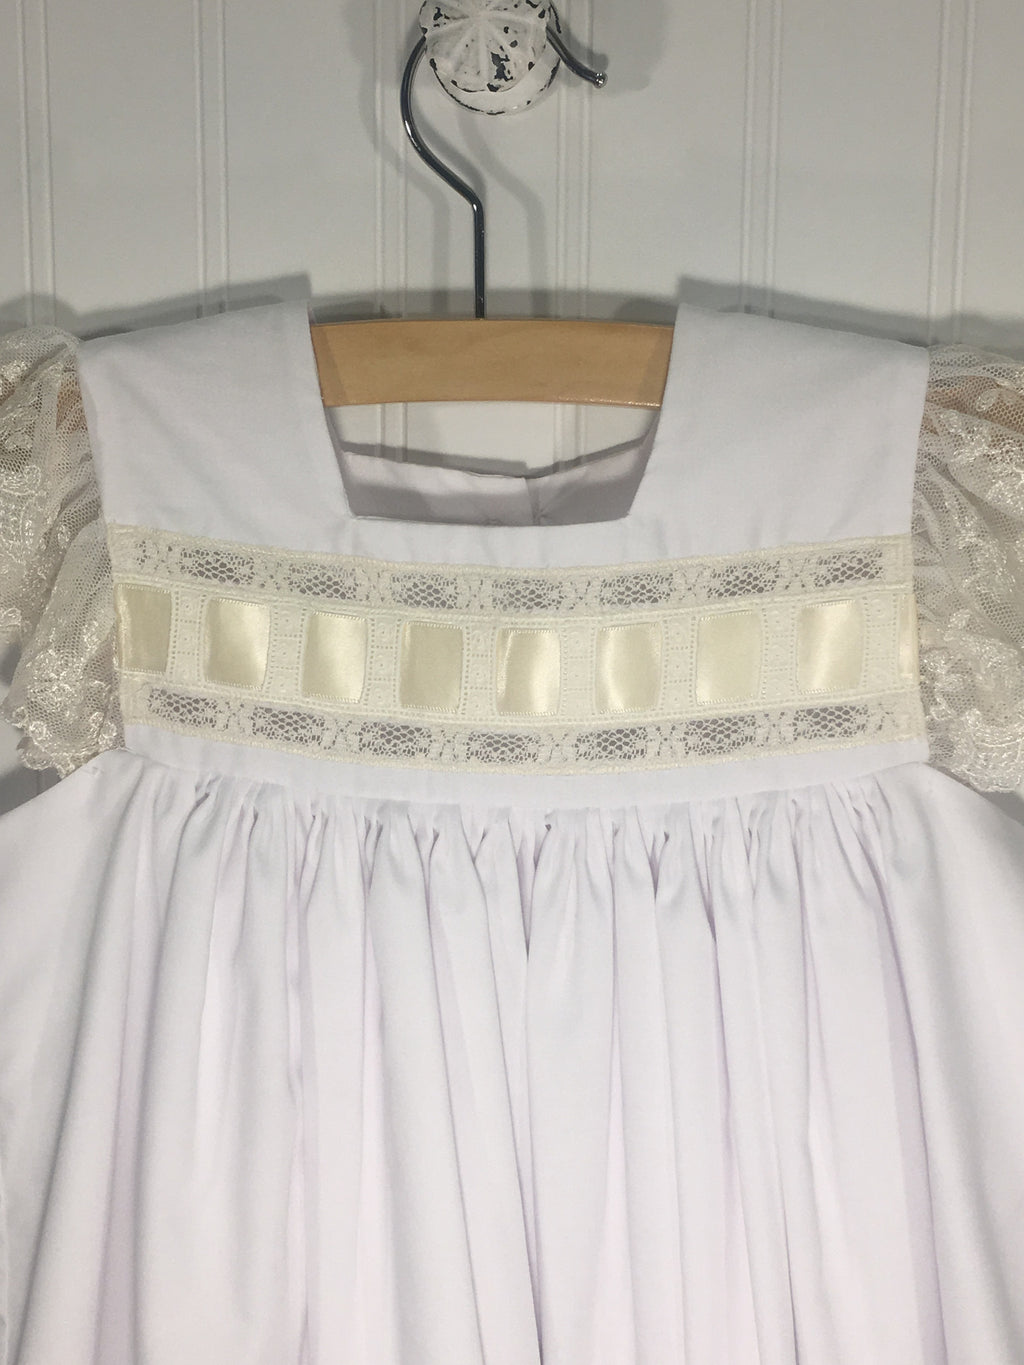 Heirloom Sleeveless Dress White with Ecru - Born Childrens Boutique